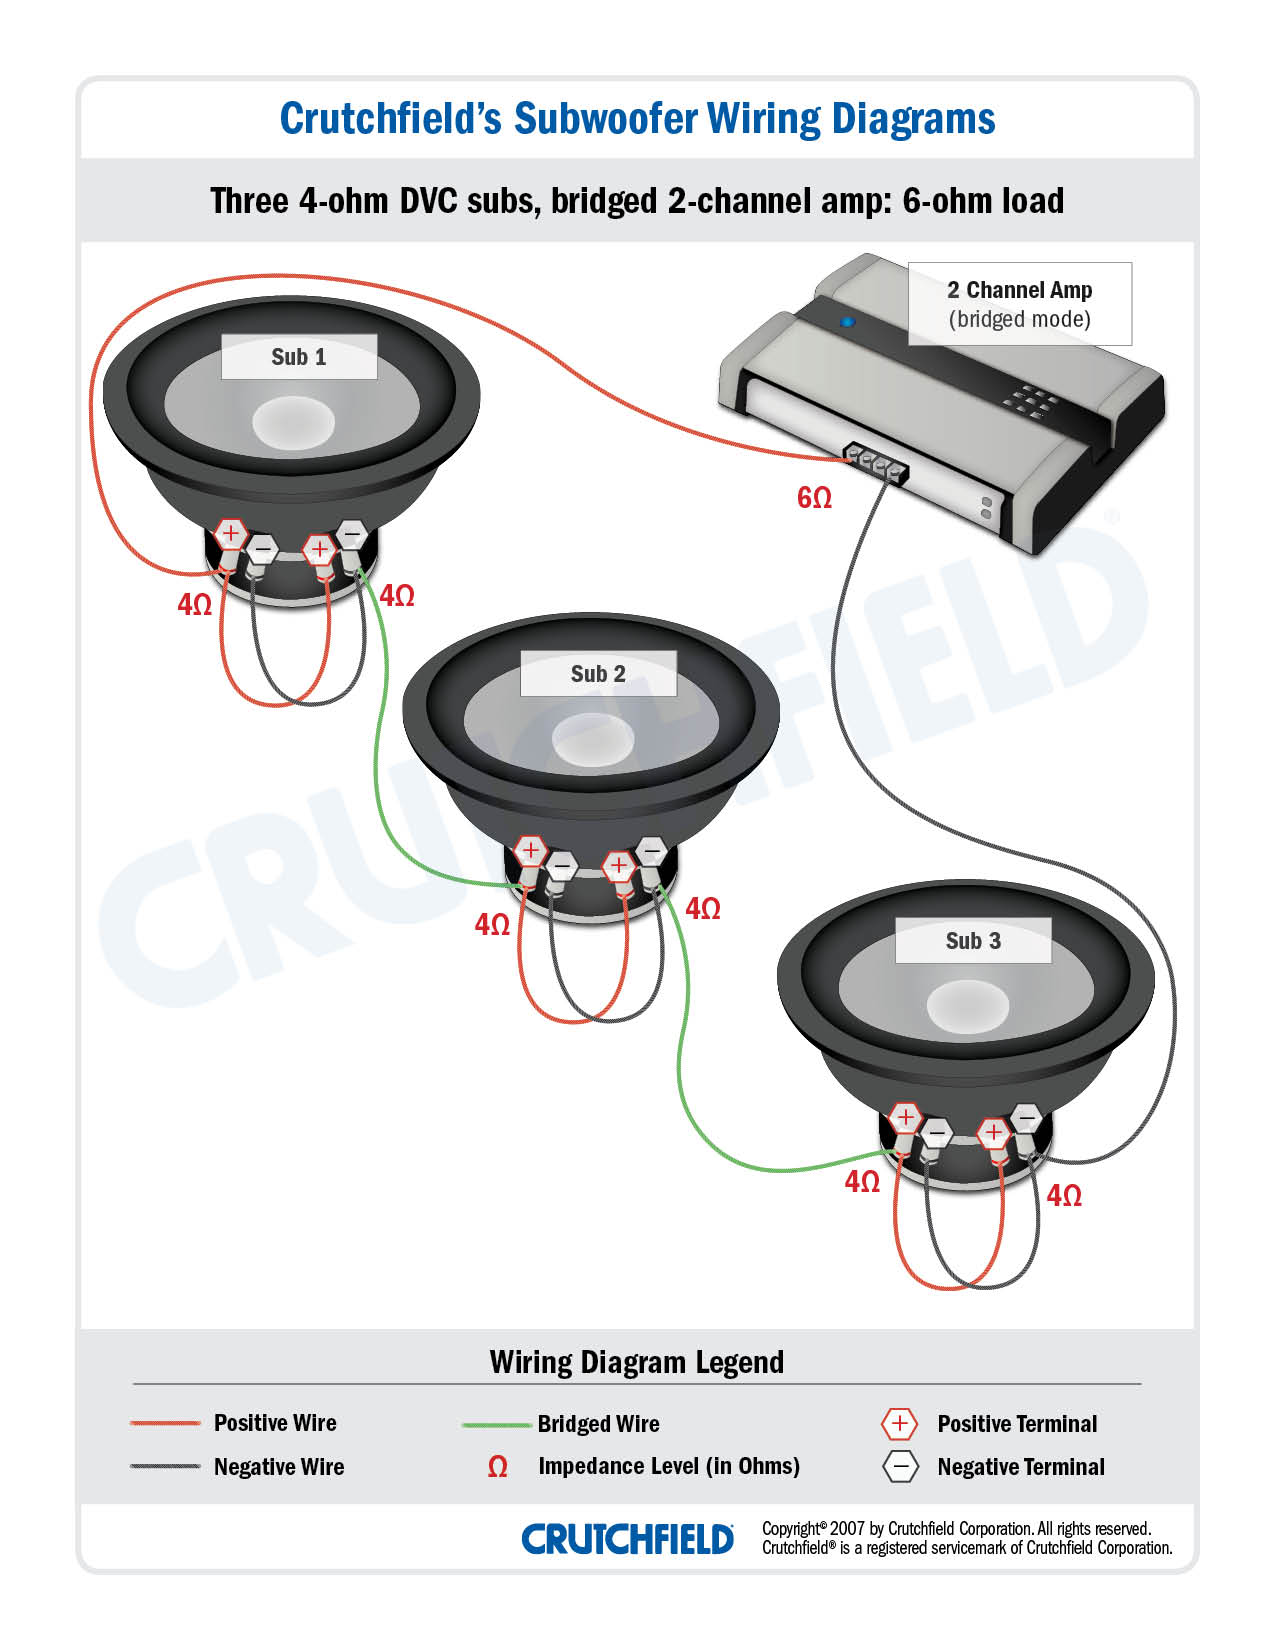 3 DVC 4 ohm 2 ch subwoofer wiring diagrams speaker wiring diagram at couponss.co